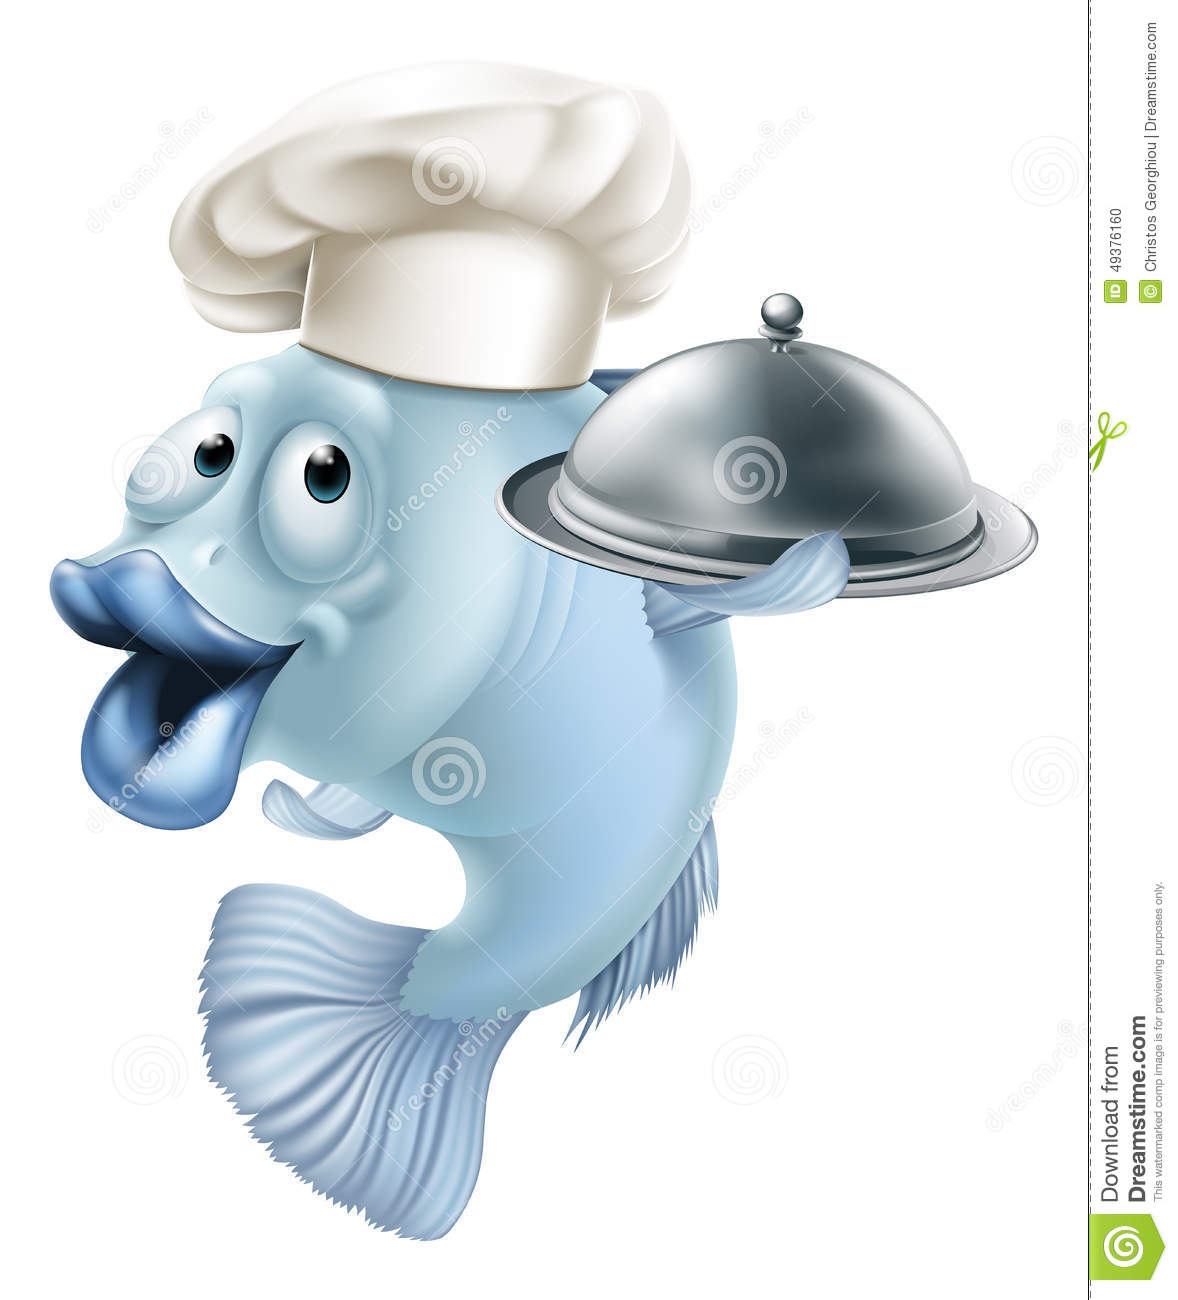 Stock Illustration Cartoon Chef Fish Cloche Illustration Blue Character Holding Tray Platter Seafood Mascot Concept Image49376160 as well 55960 moreover Stock Illustration Shark Heart His Hands Character Funny Love Image41942401 further Royalty Free Stock Photography Cute Cartoon Sushi Set Image24554637 additionally Fotografie Stock Pesci Del Personaggio Dei Cartoni Animati Image24104773. on fish cartoon character